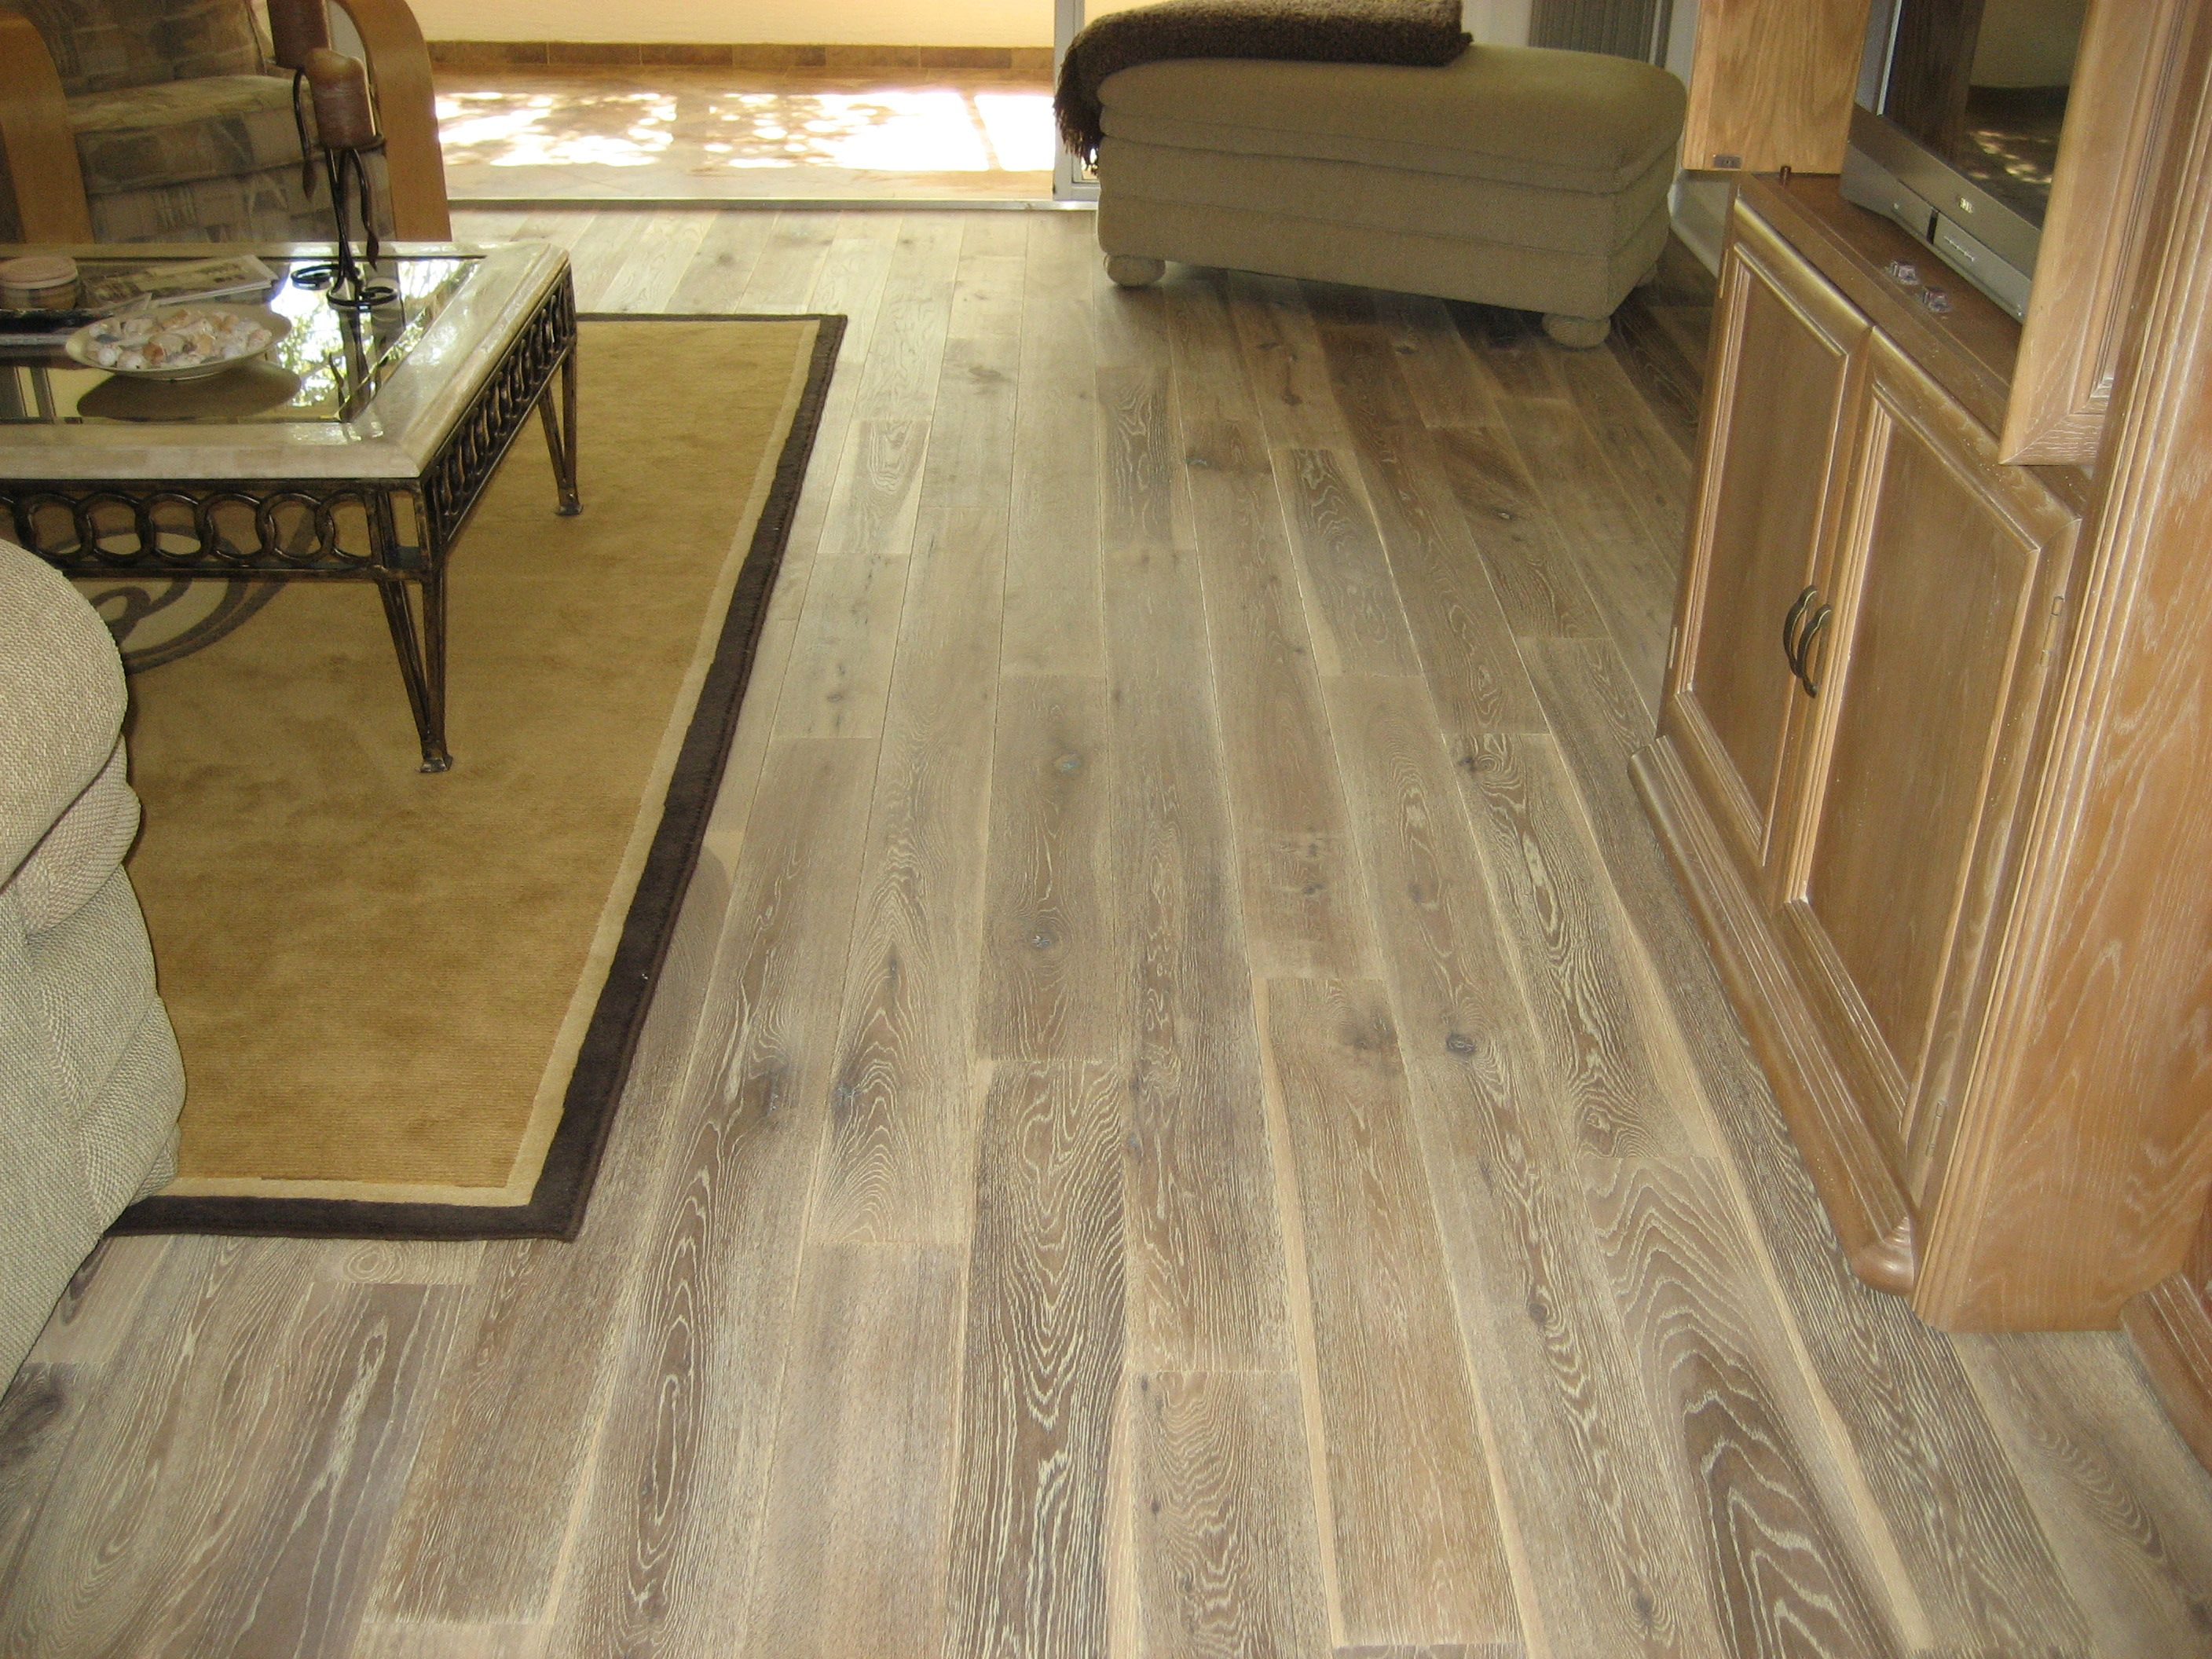 Tile floor ceramic tile jp custom tile and wood floors mudroom tile floor ceramic tile jp custom tile and wood floors dailygadgetfo Image collections